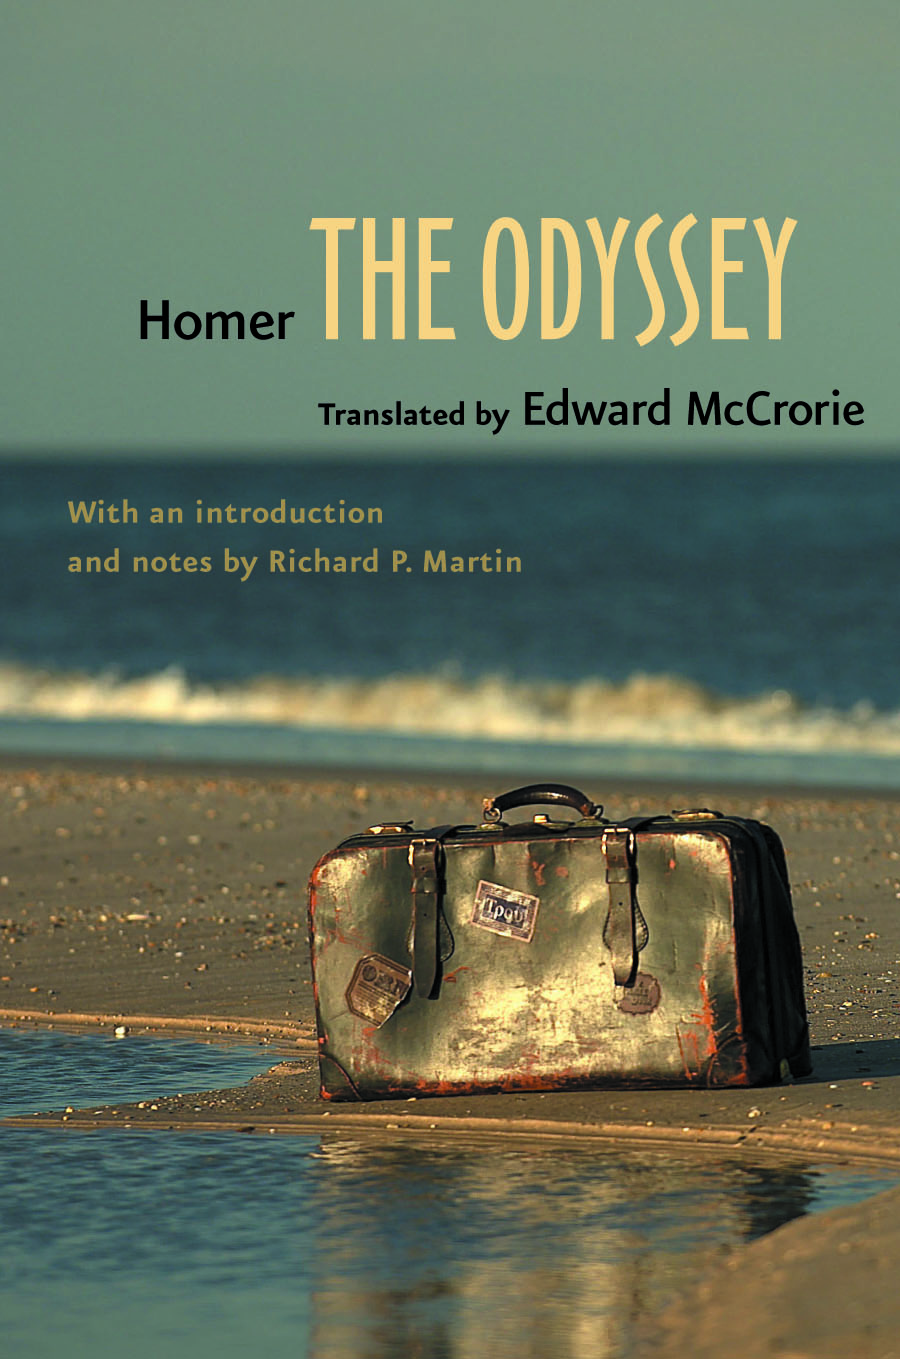 a literary analysis of the feelings and emotions in the odyssey by homer Everything you ever wanted to know about telemachos in the odyssey, written  by  character analysis  notice how homer calls him thoughtful telemachos   he may not be exactly the ruler that his dad is, but we get the feeling that he'll .